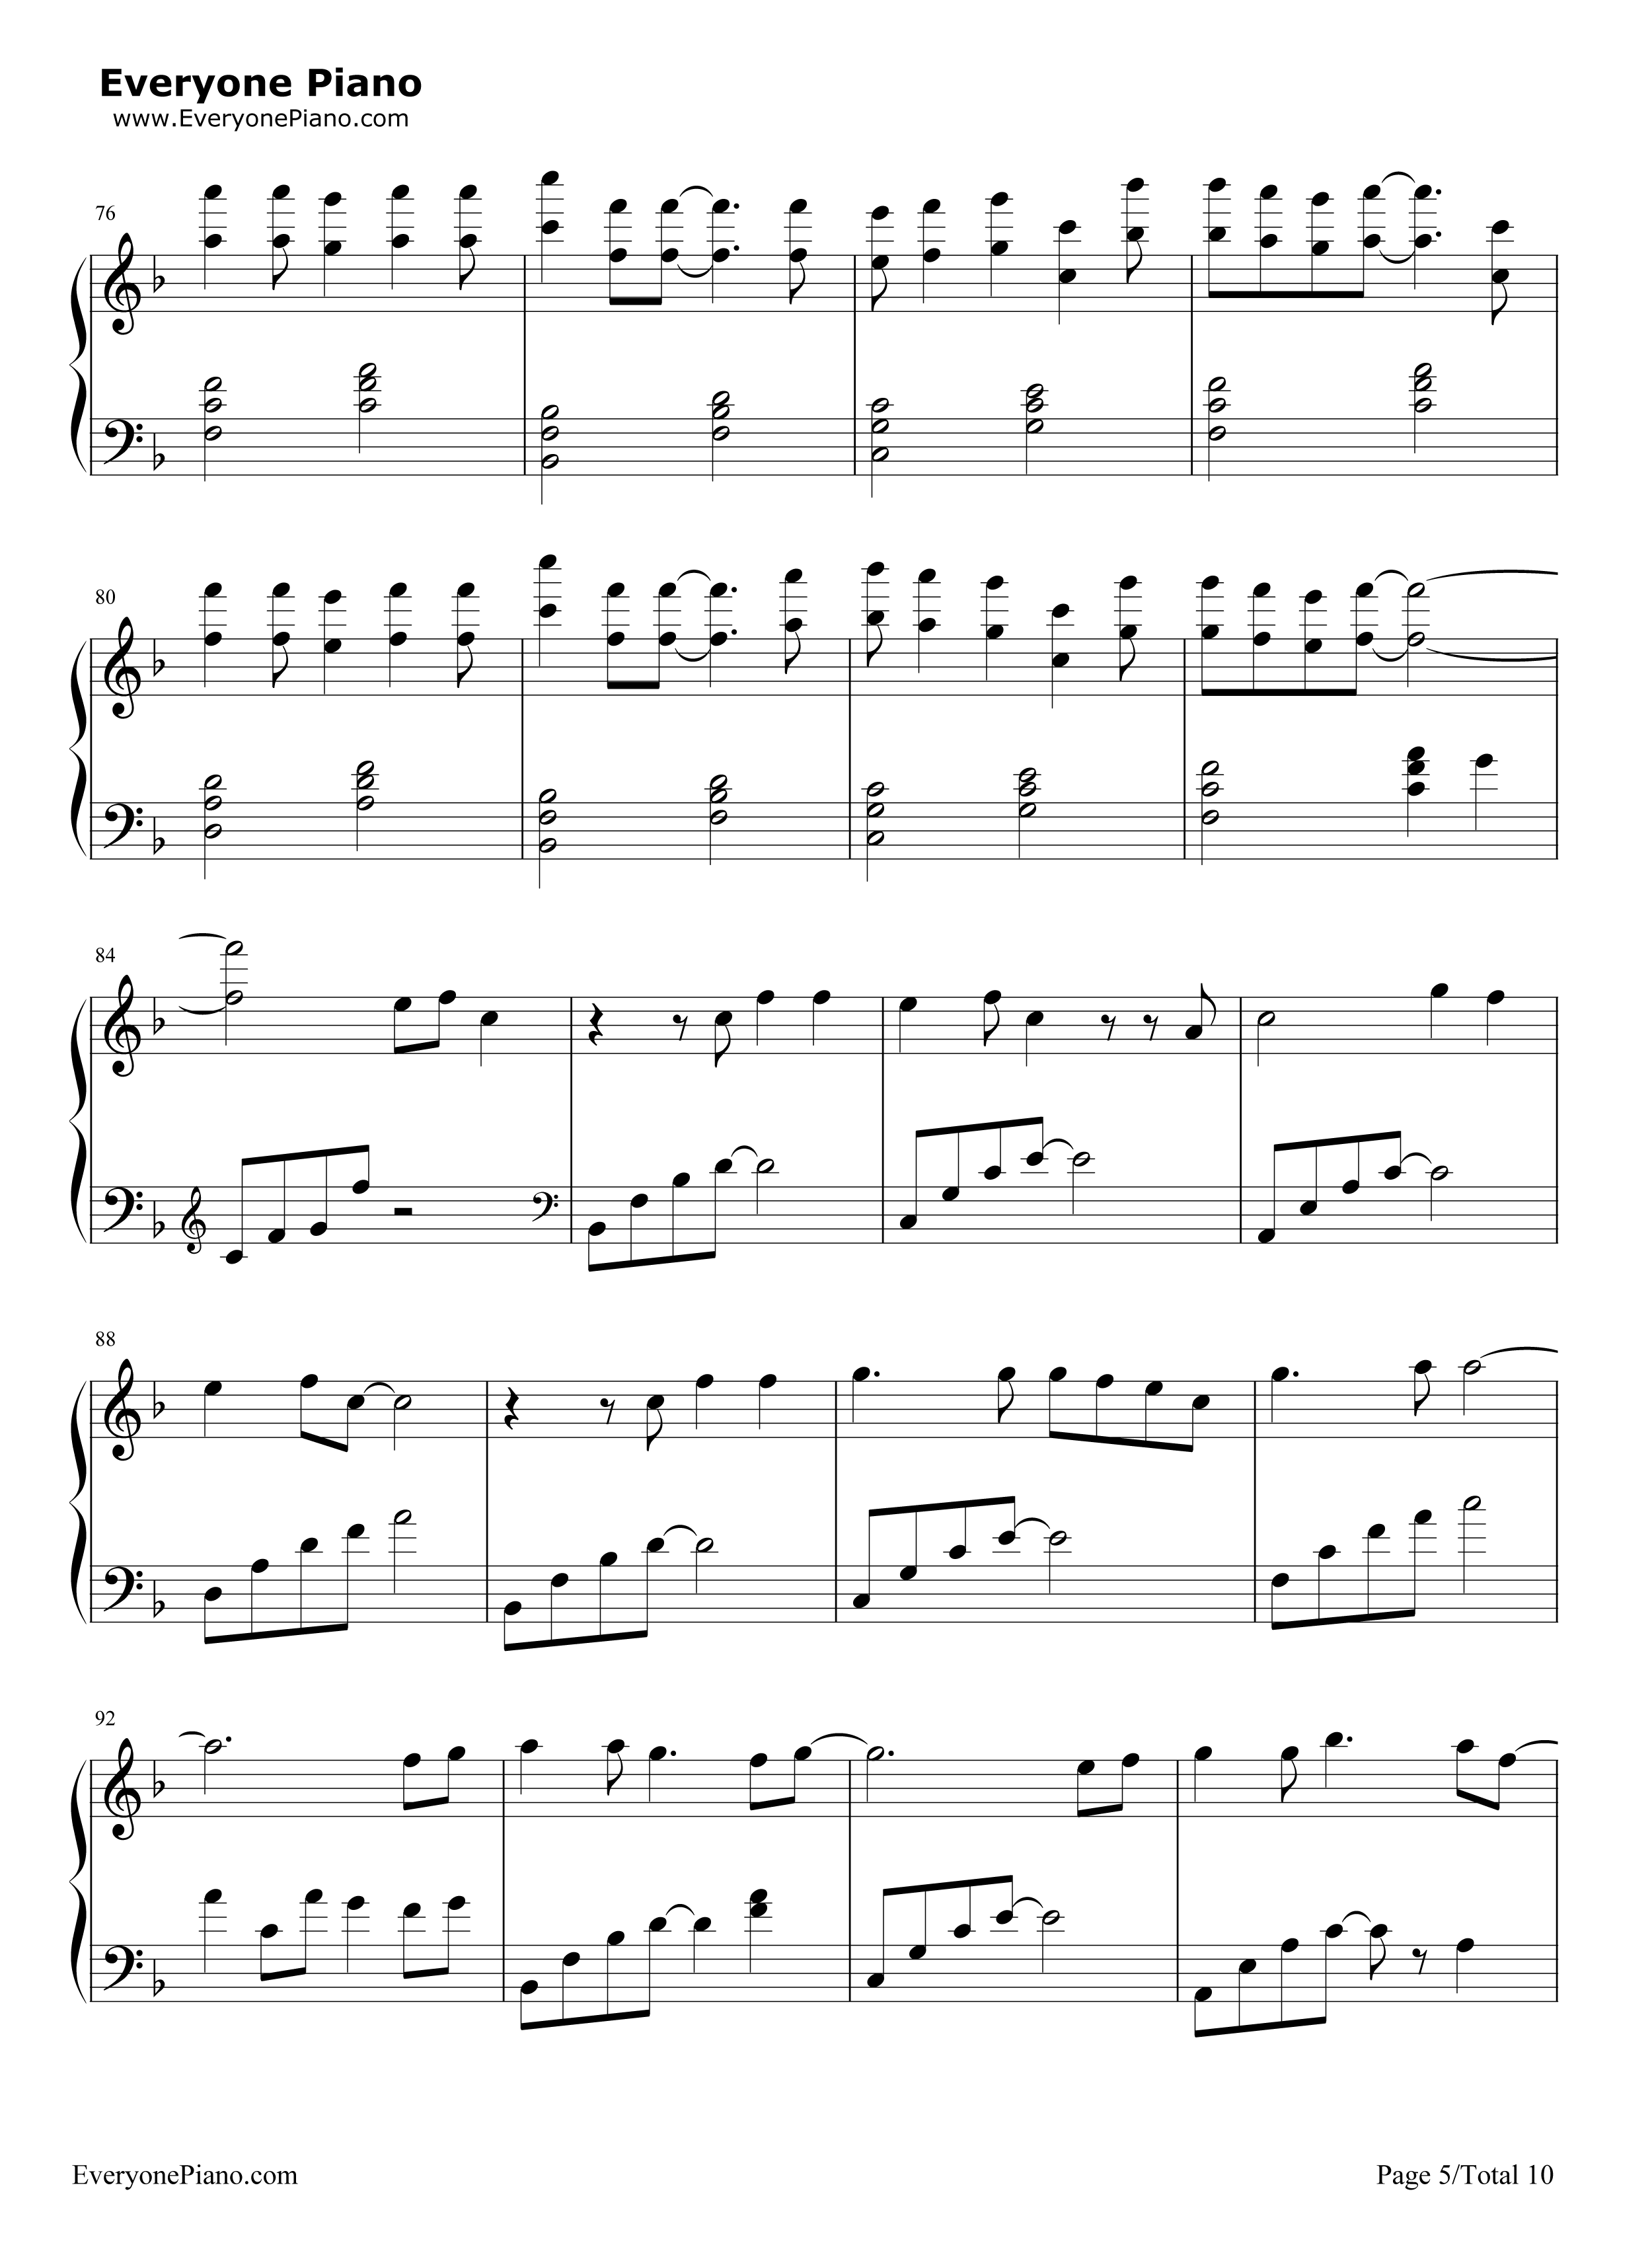 Letter song free piano sheet music piano chords letter song stave preview 5 hexwebz Gallery